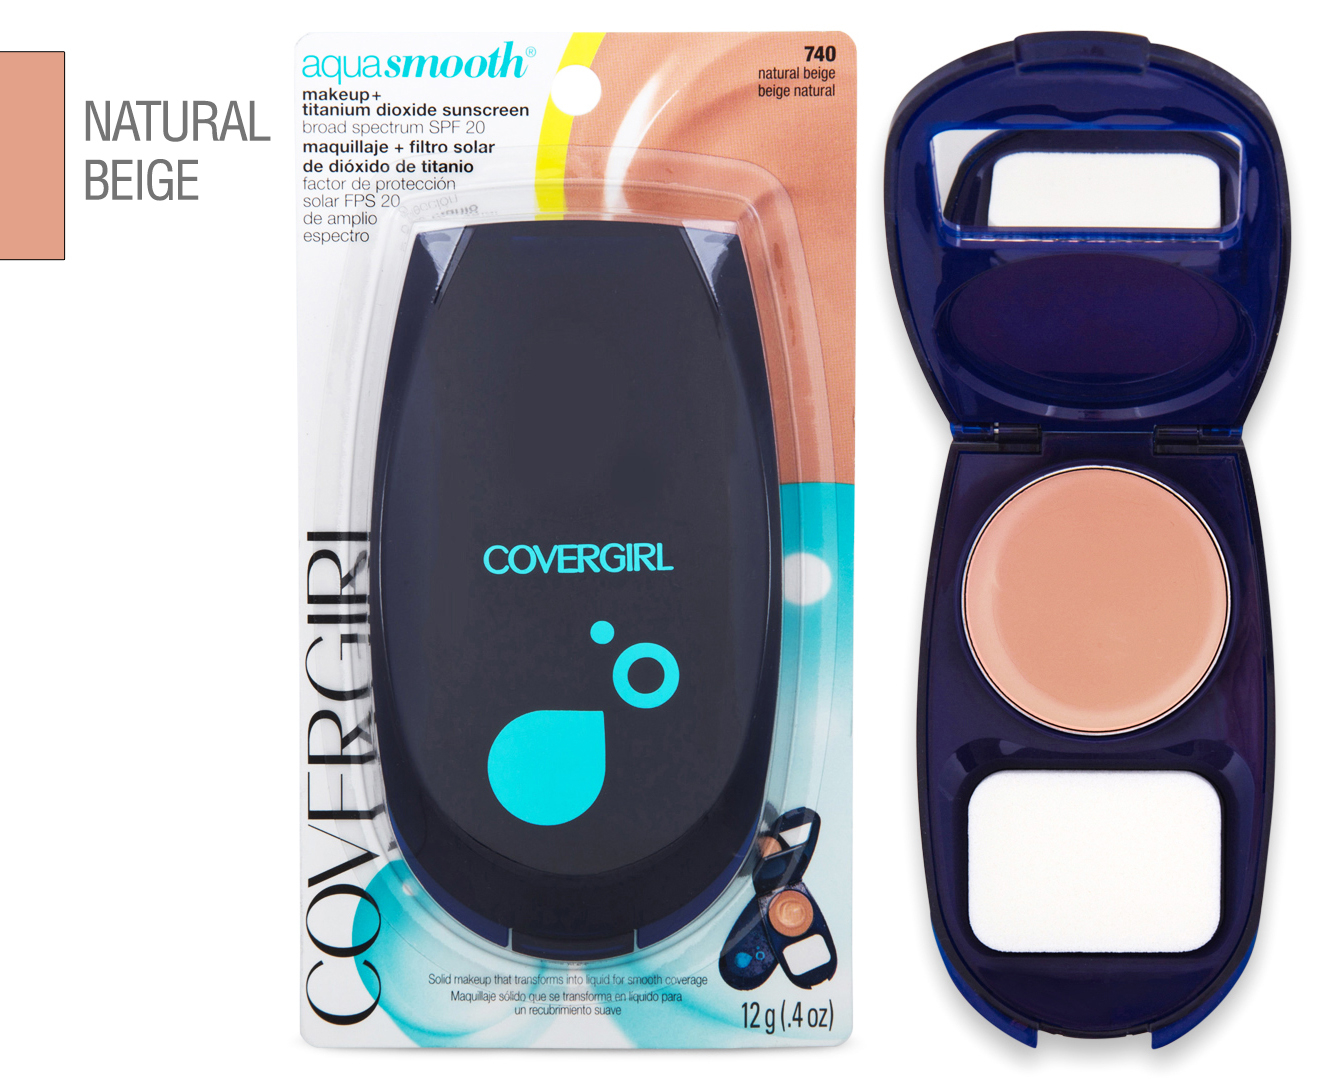 Covergirl Aquasmooth Compact Foundation 740 Natural Beige